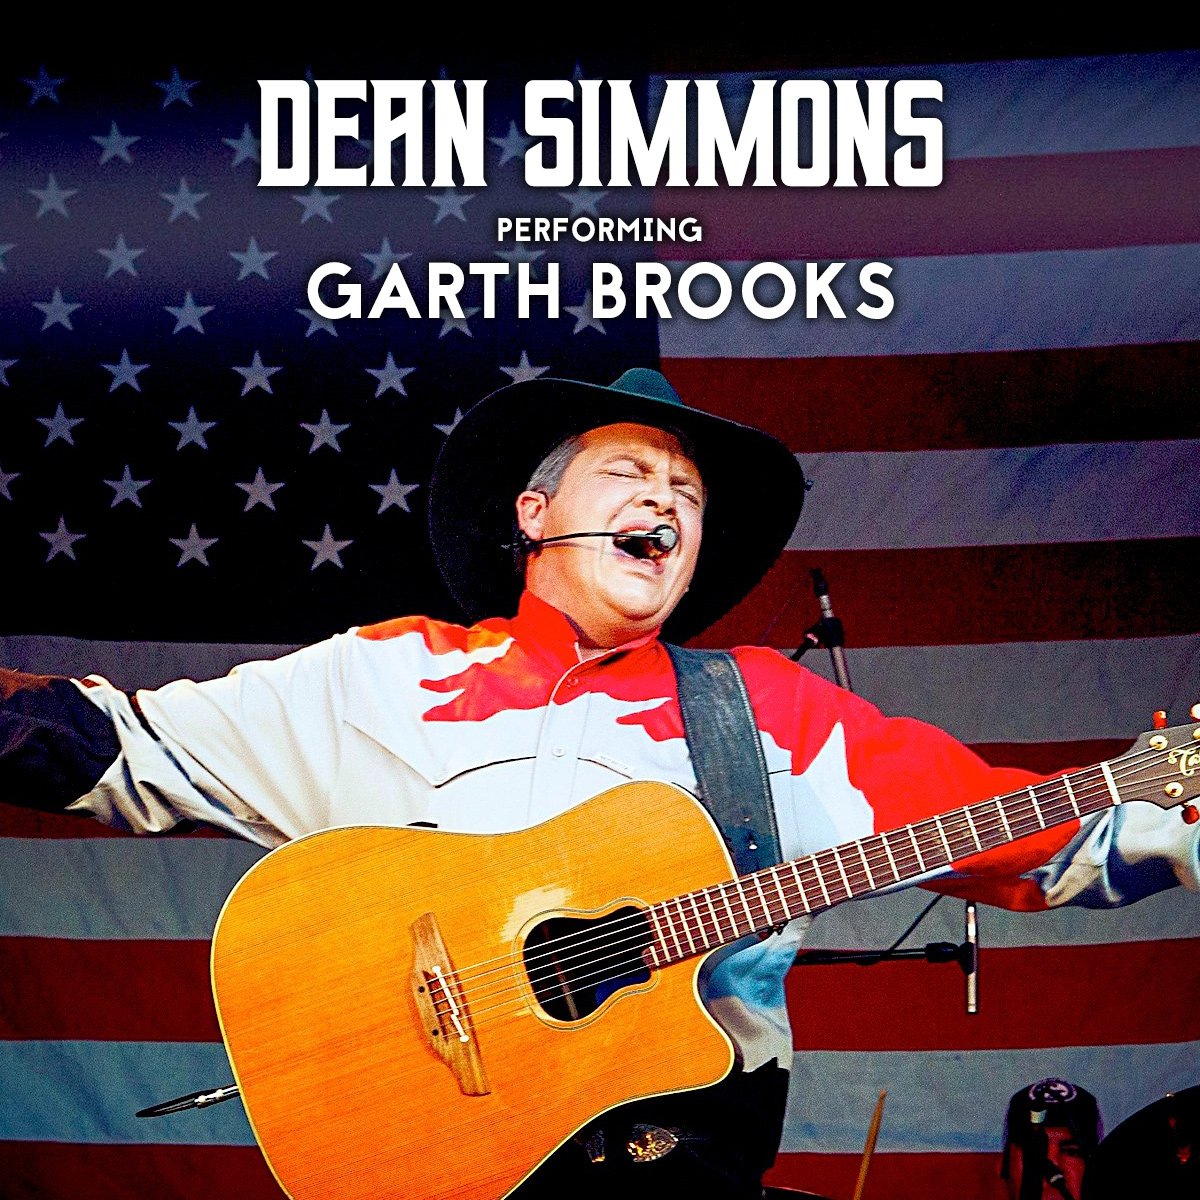 bogus fest Garth Brooks